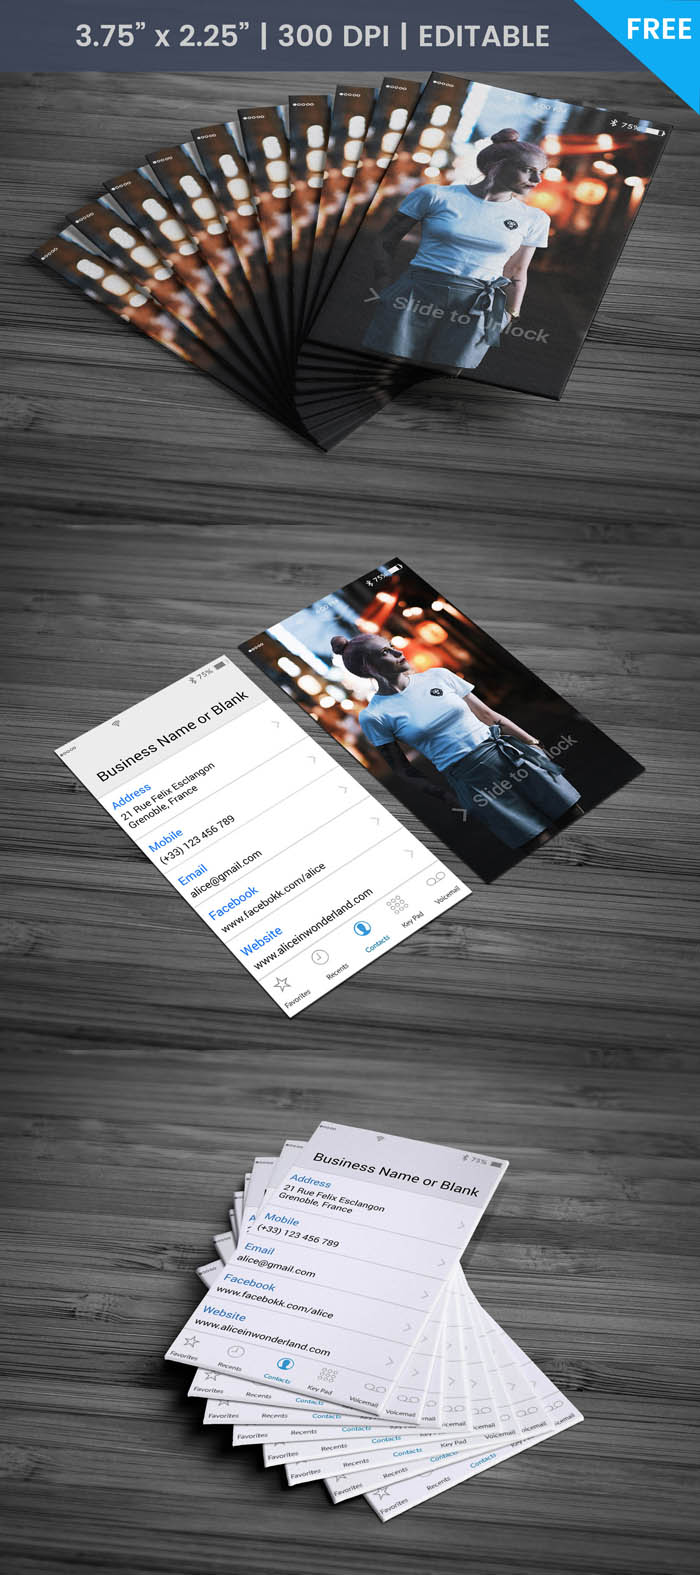 Free Iphone Contacts Theme Business Card Template